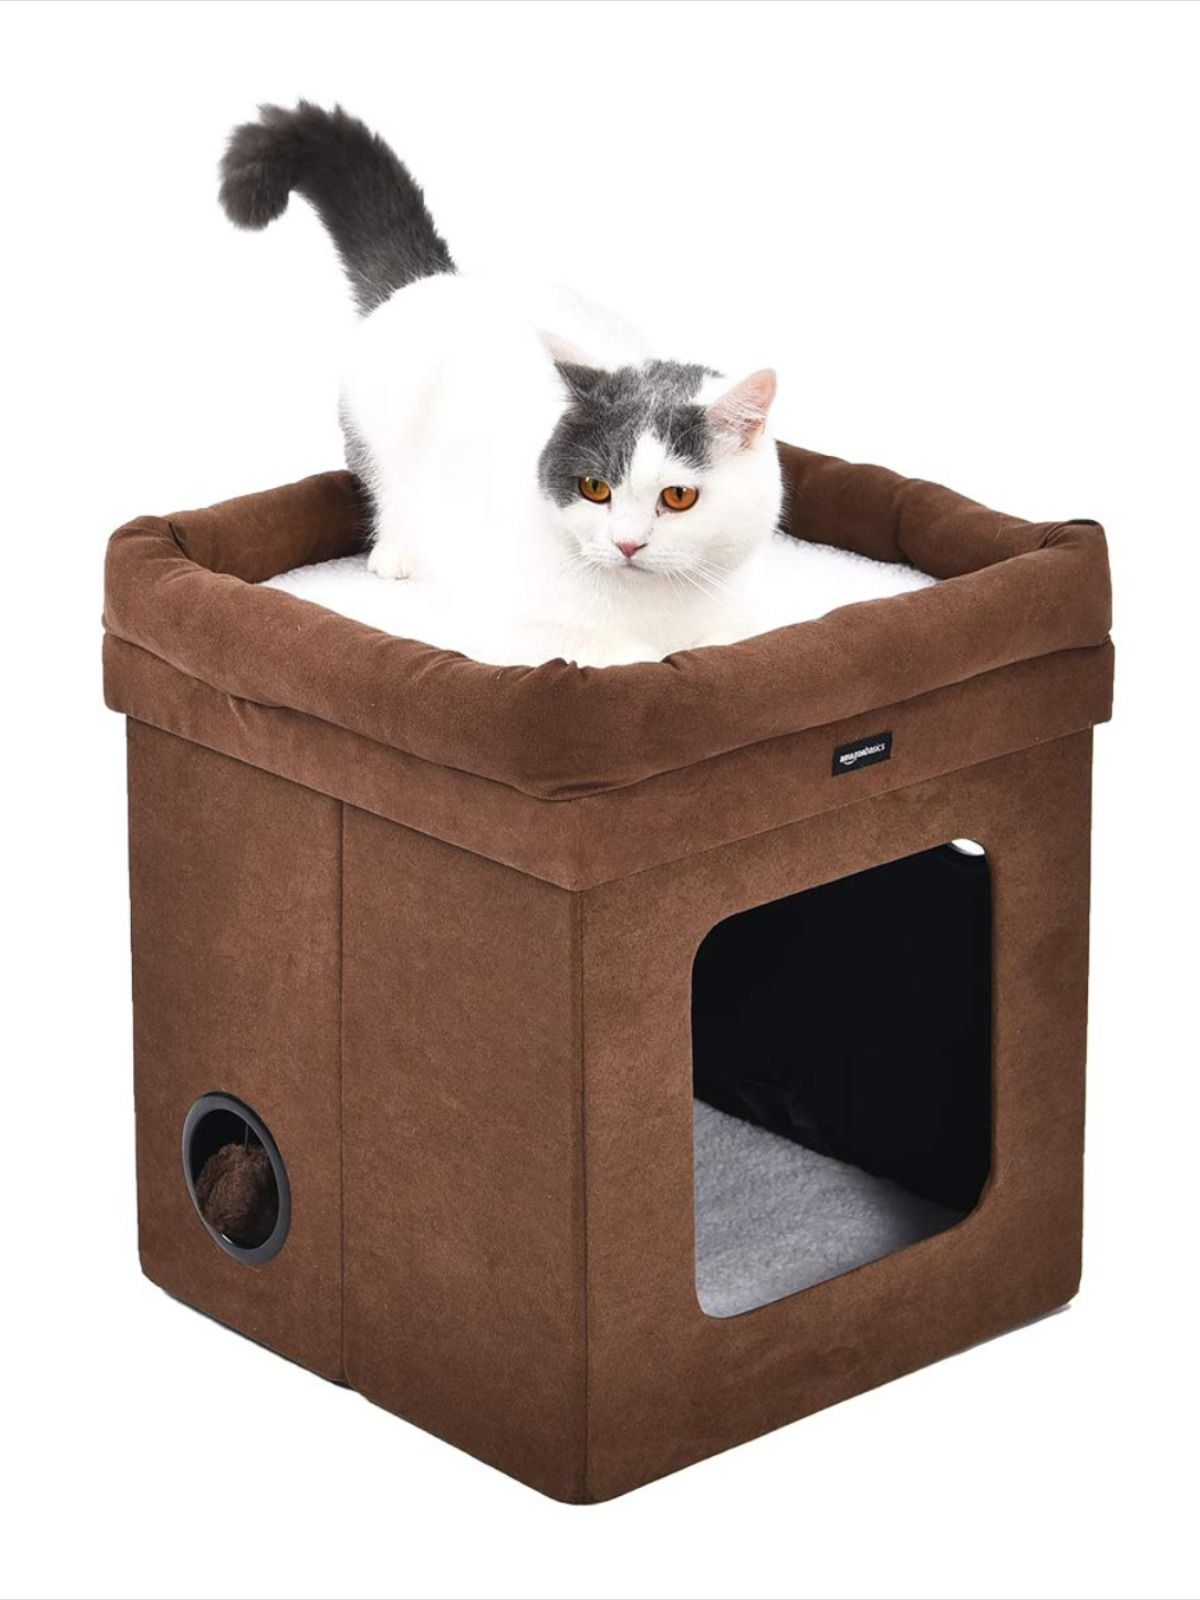 Cubeshaped cat house offers kitty a fun, relaxing place